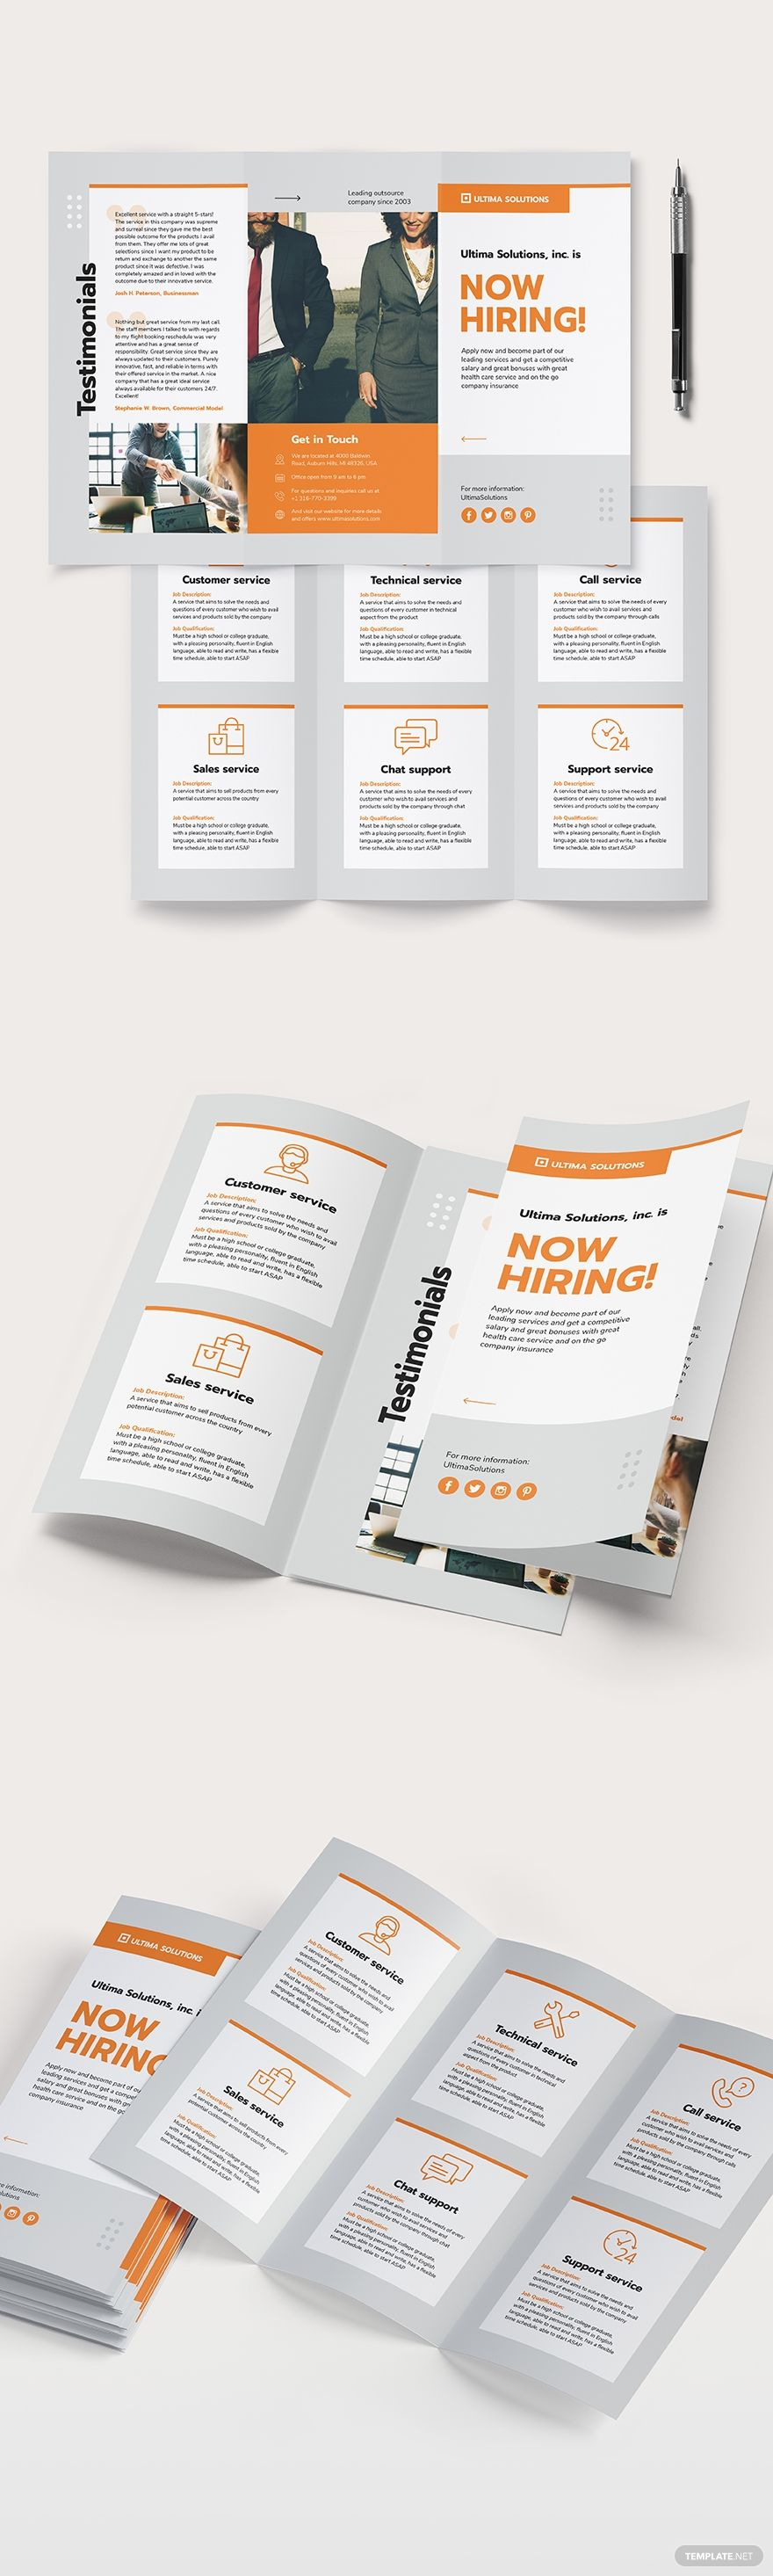 Employee Recruitment TriFold Brochure Template in 2020